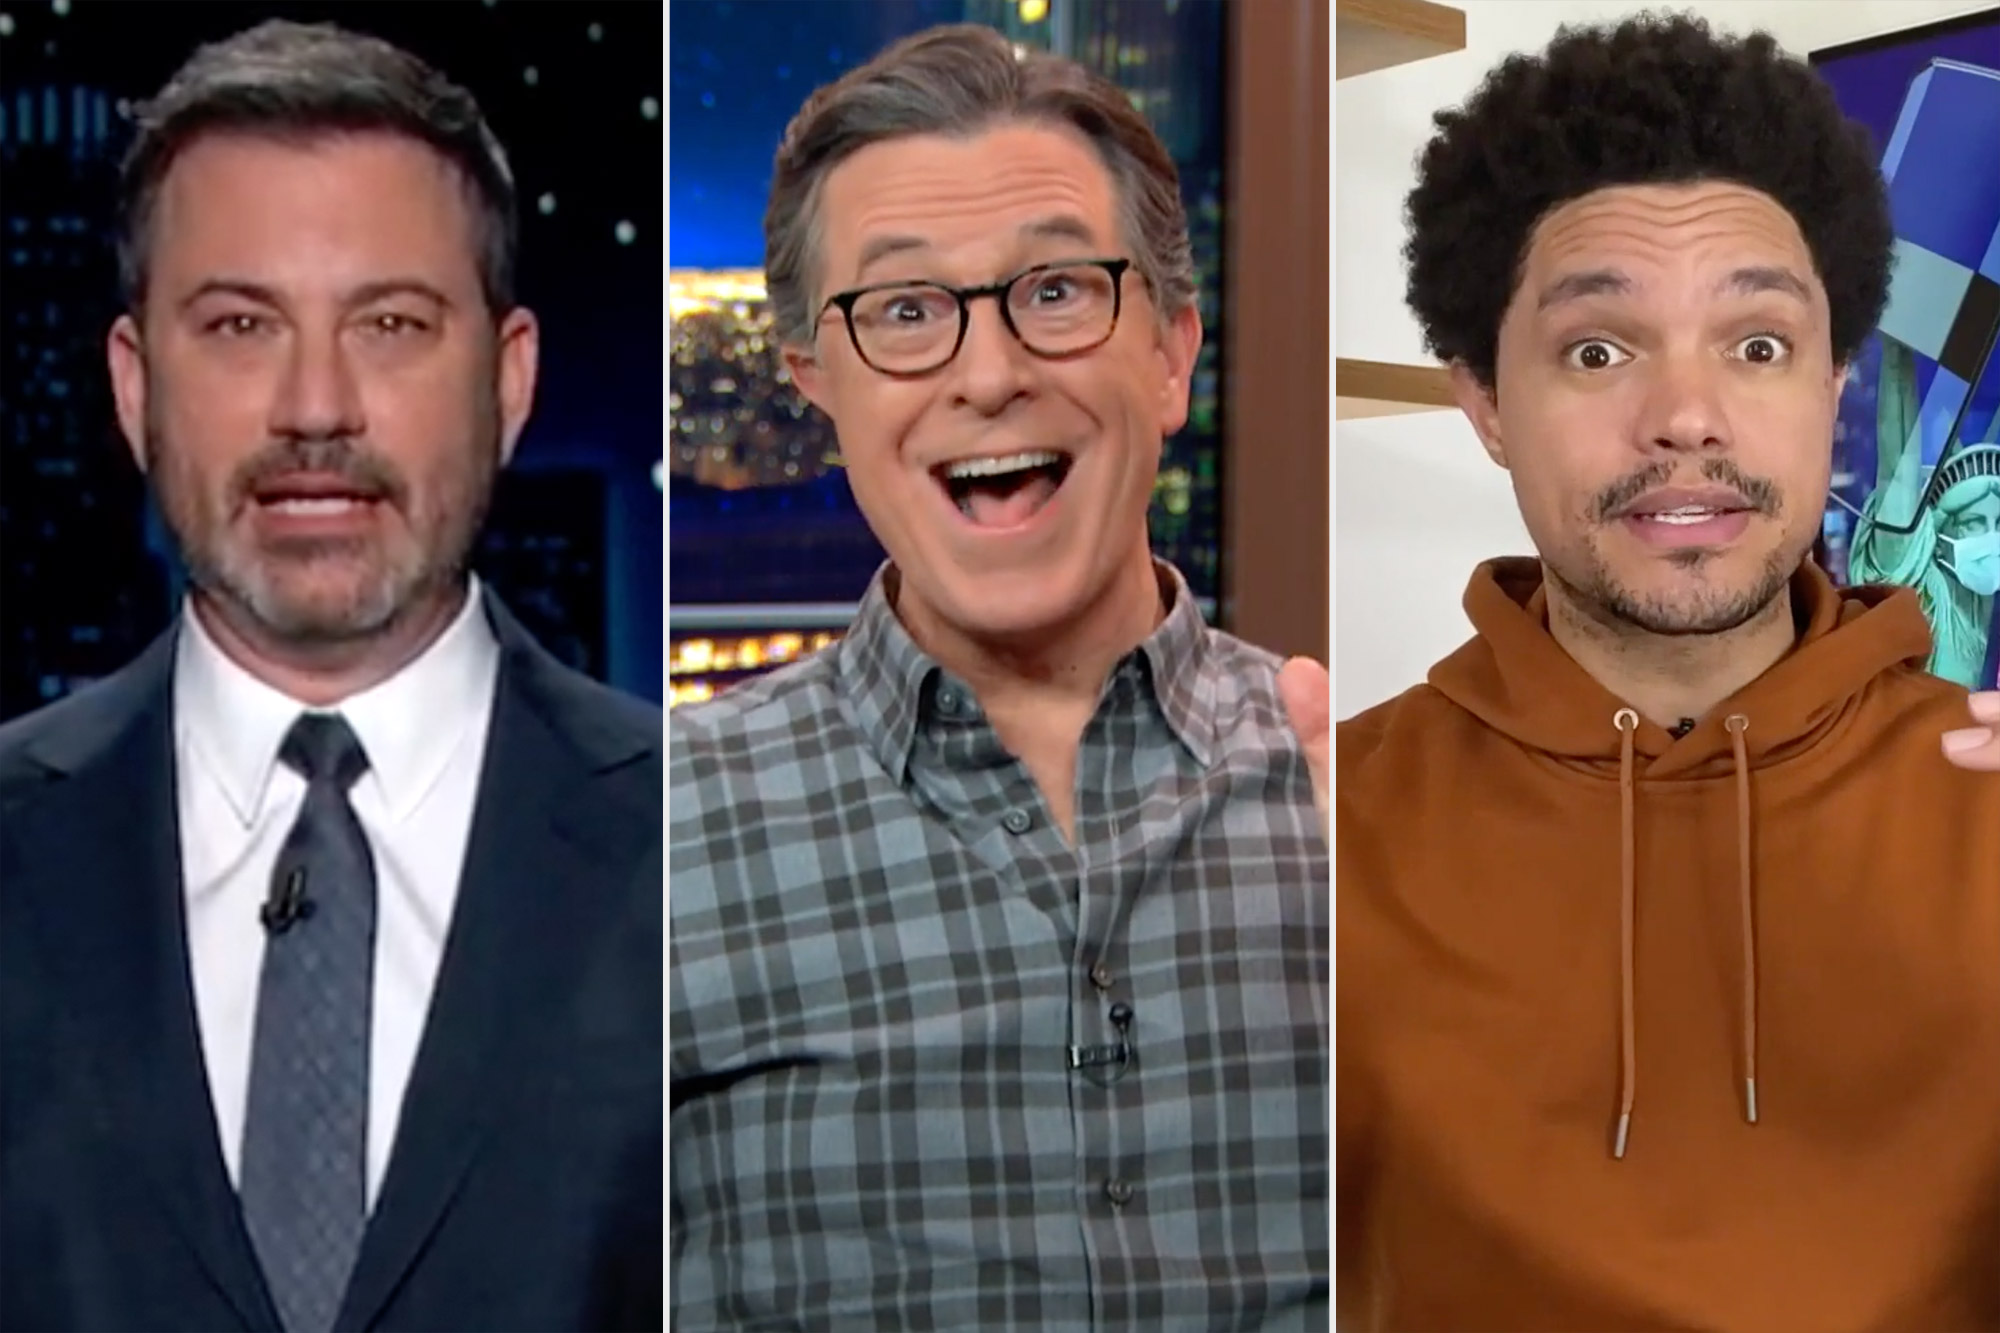 Late night hosts react to the election